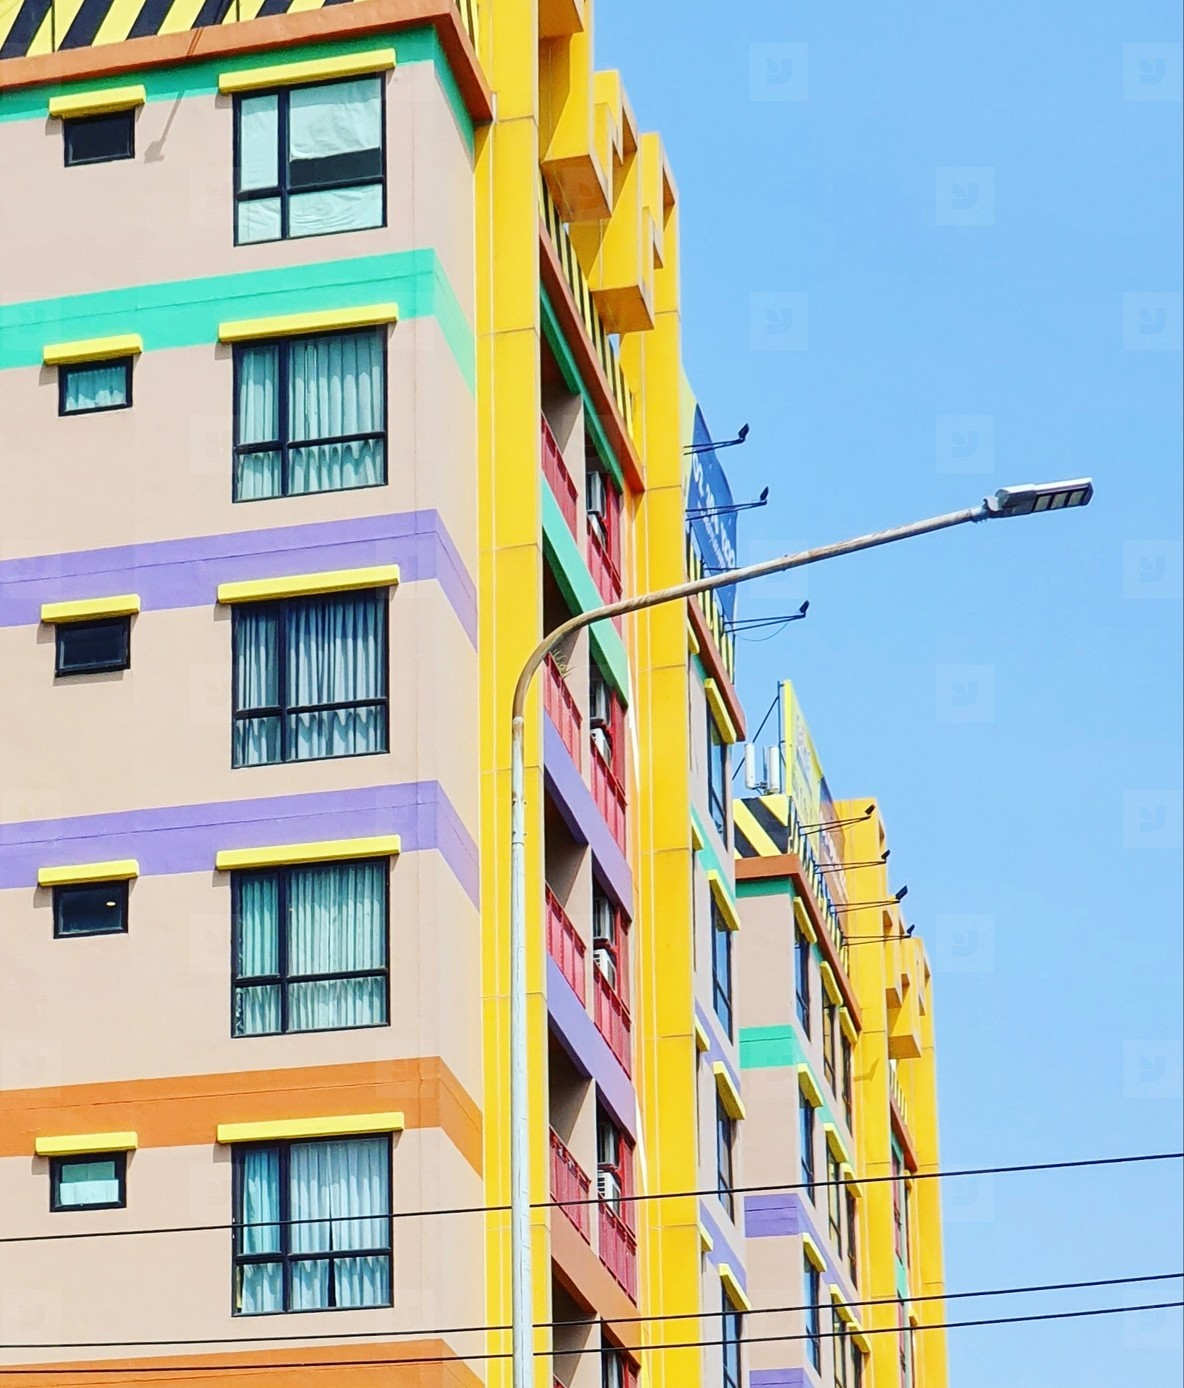 Colorful houses facades